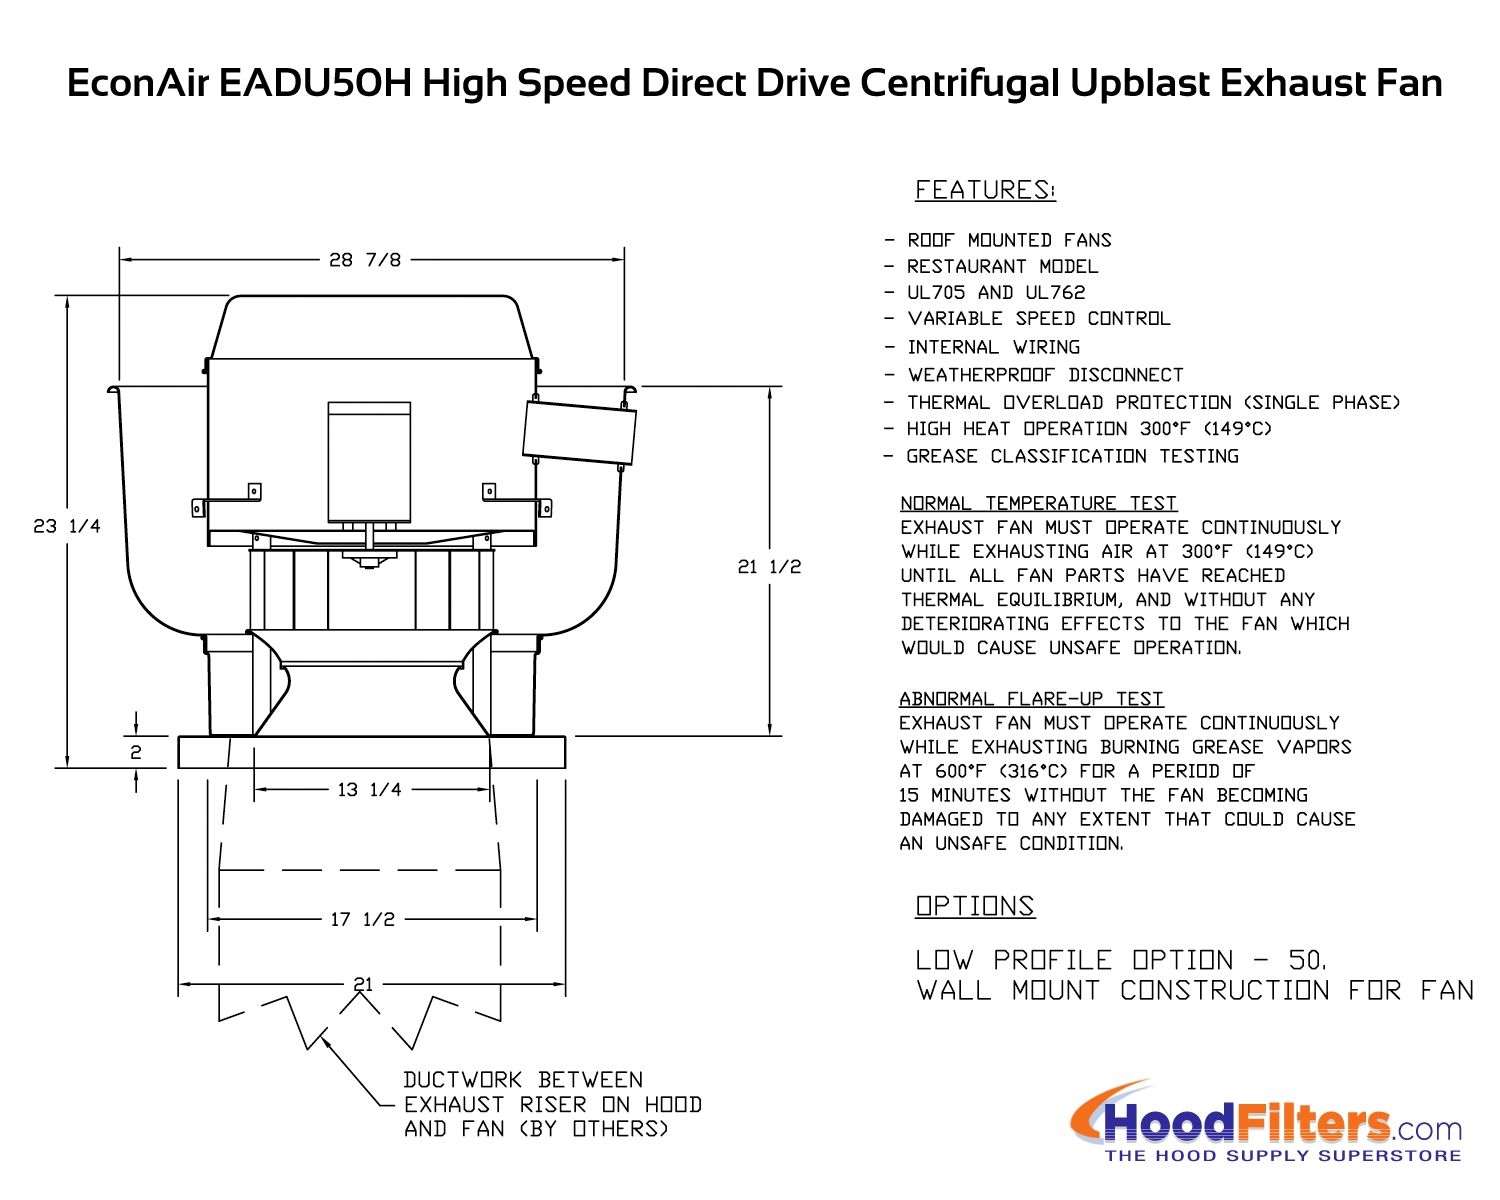 Upblast Exhaust Fan Wheel Httpurresultsus Pinterest - Fantech wiring diagram